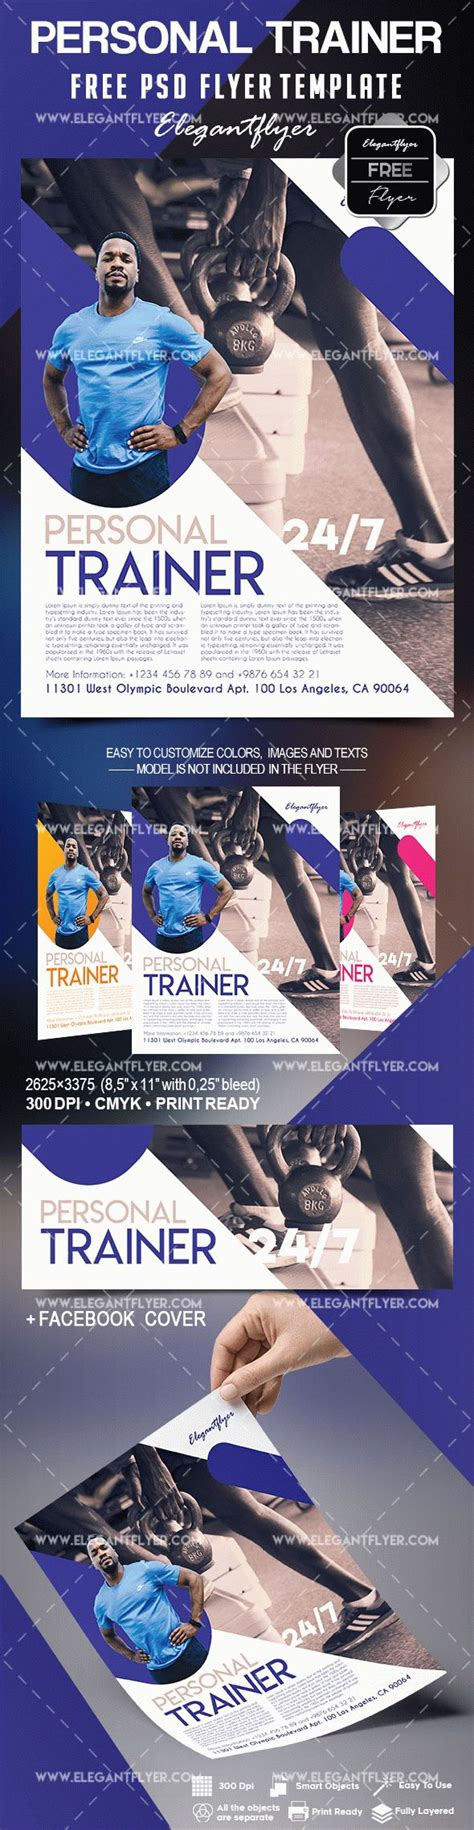 Personal Trainer Free Flyer Psd Template By Elegantflyer Personal Flyer Template